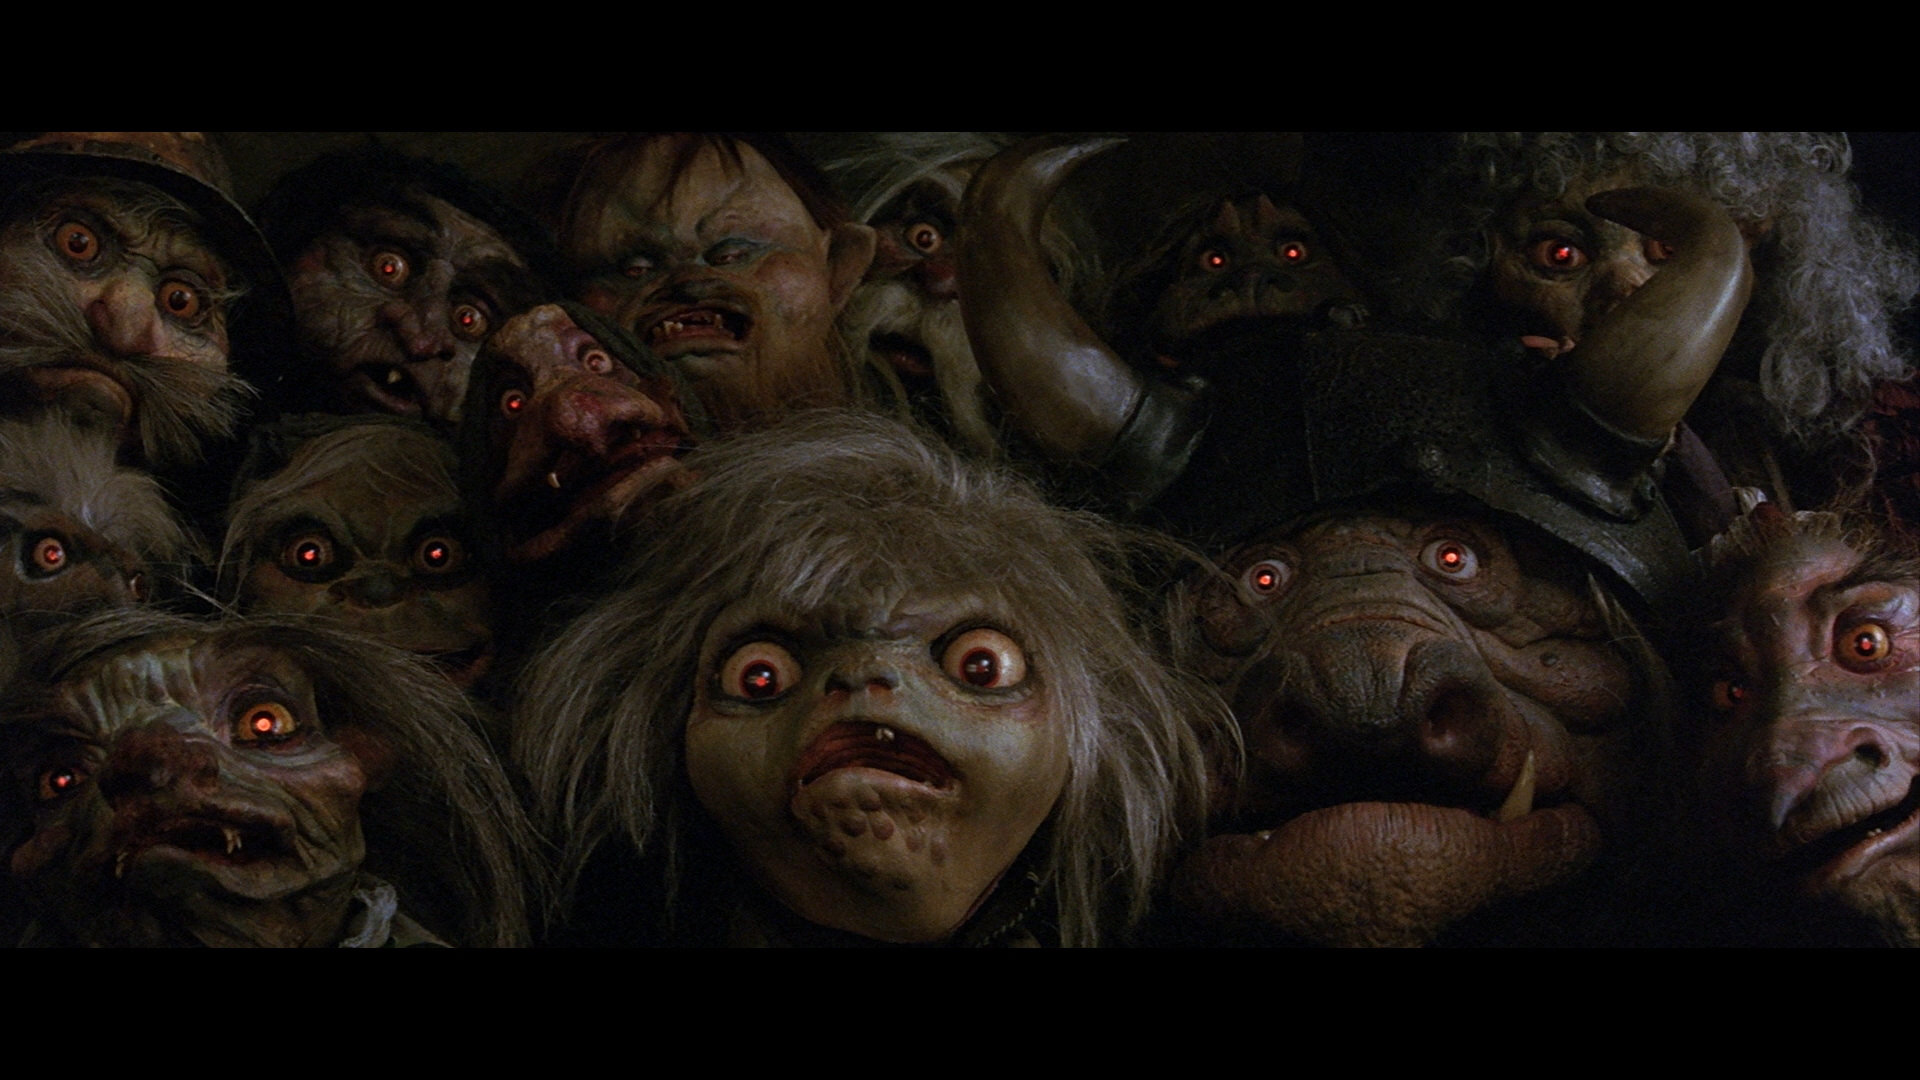 goblins-with-glowing-red-eyes-labyrinth-9029050-1920-1080